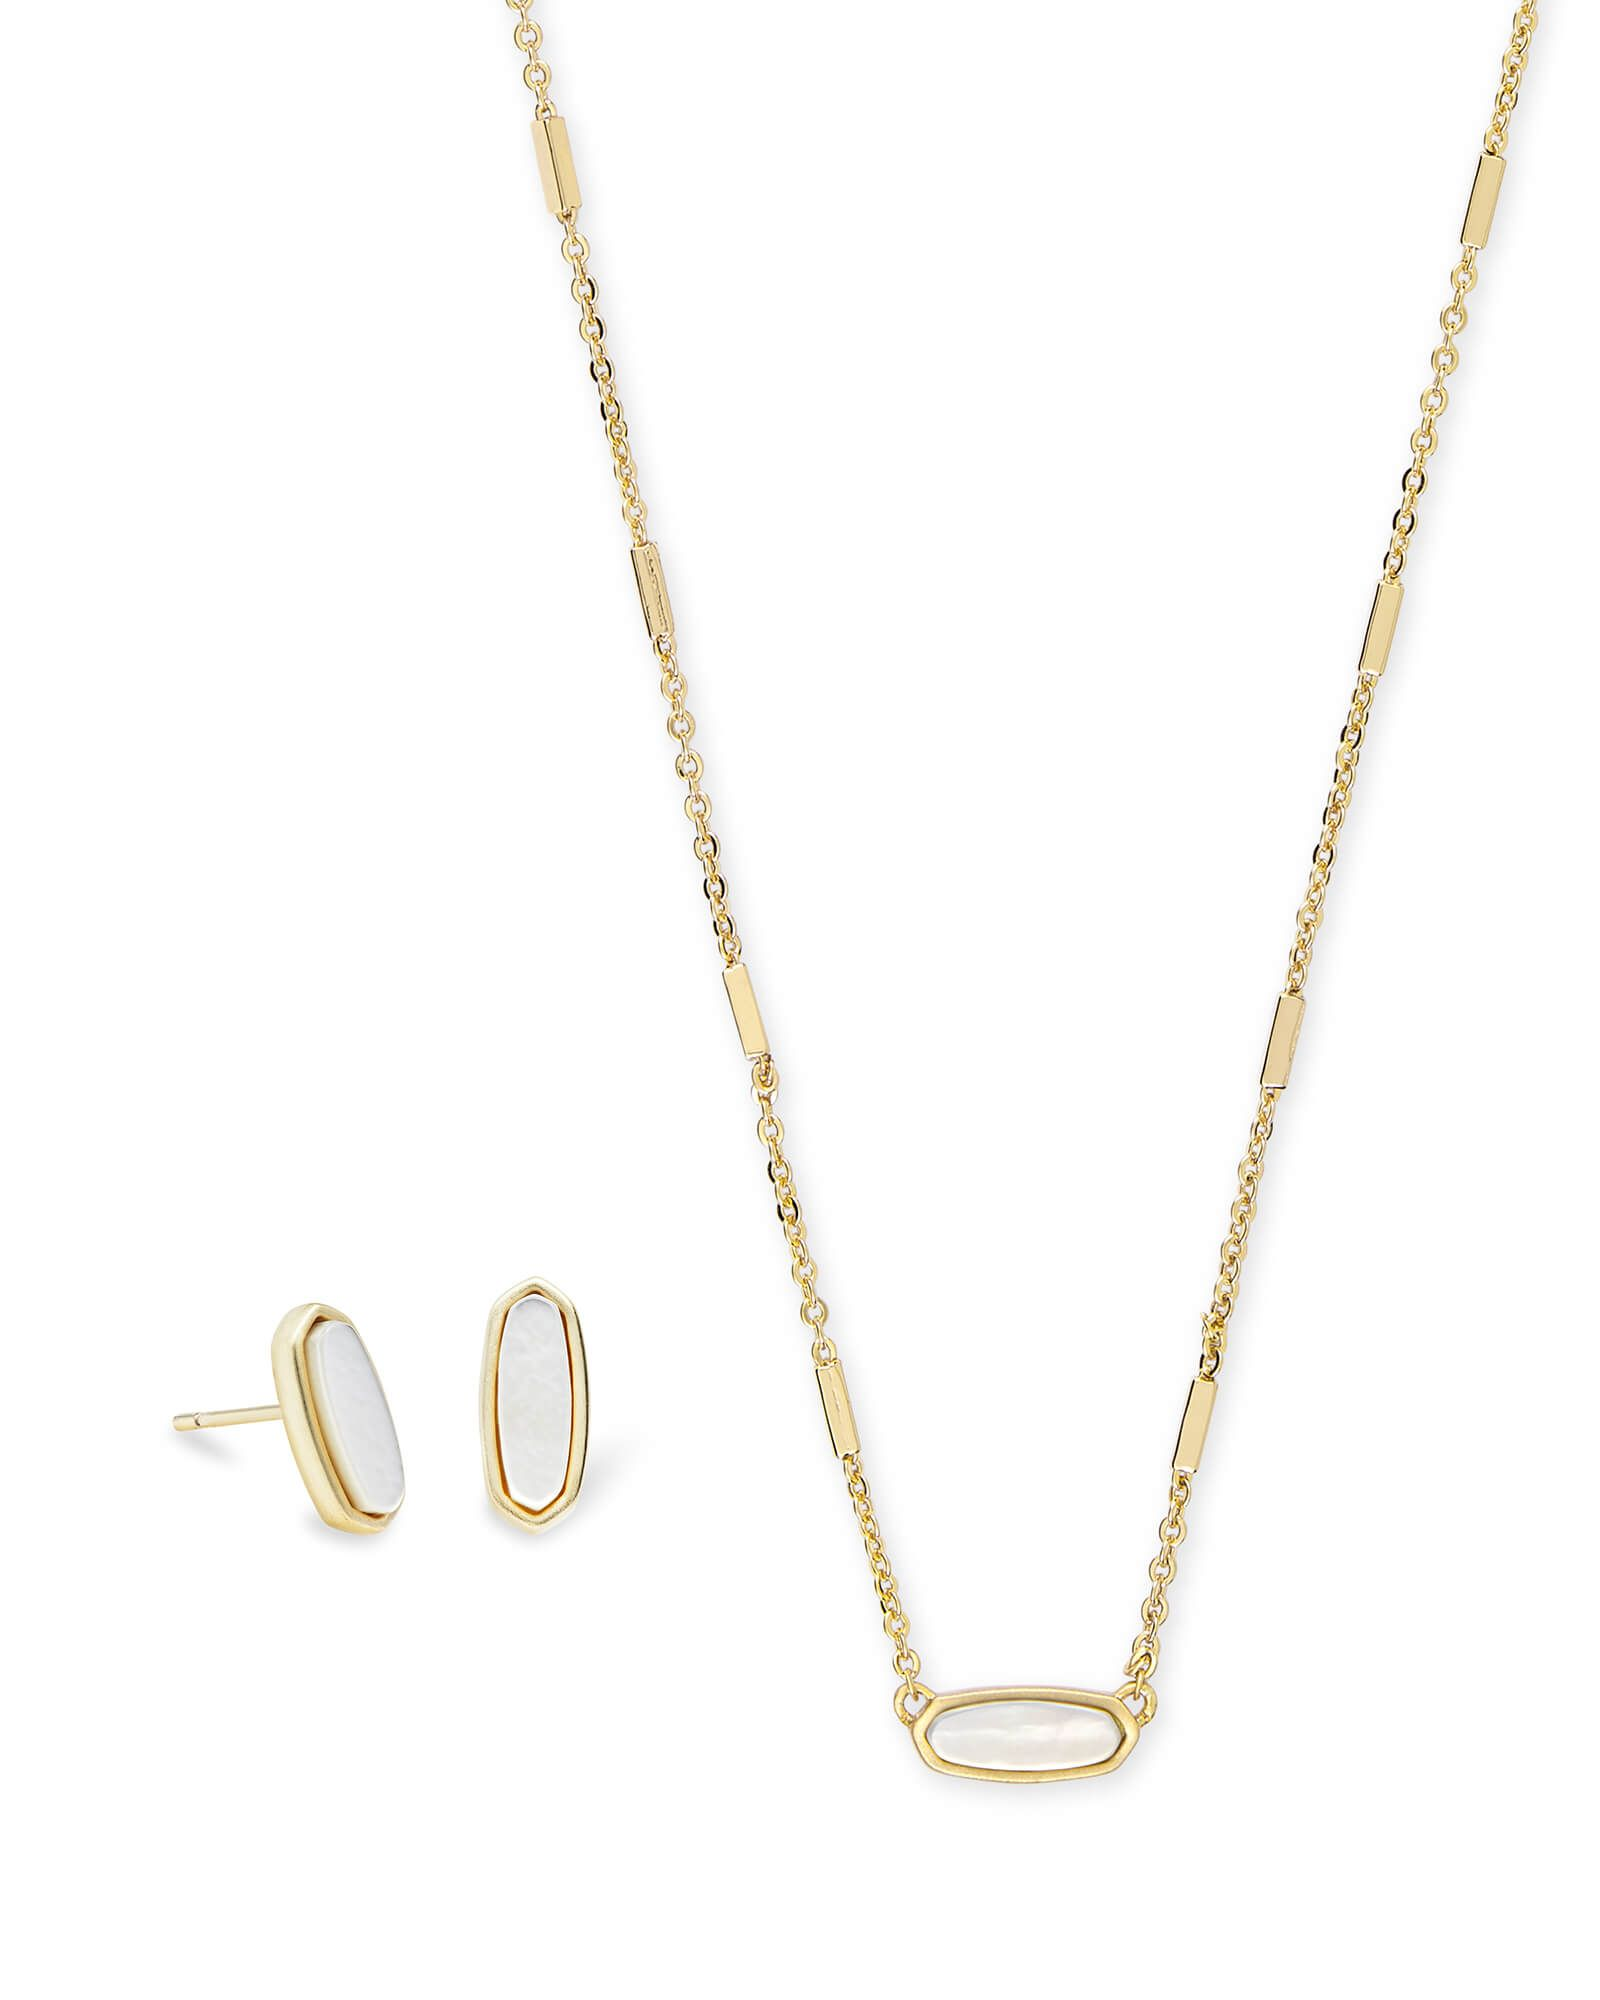 8c09ab796 Shop the Mae Gold Stud Earrings and the Miya Gold Pendant Necklace together  and save.